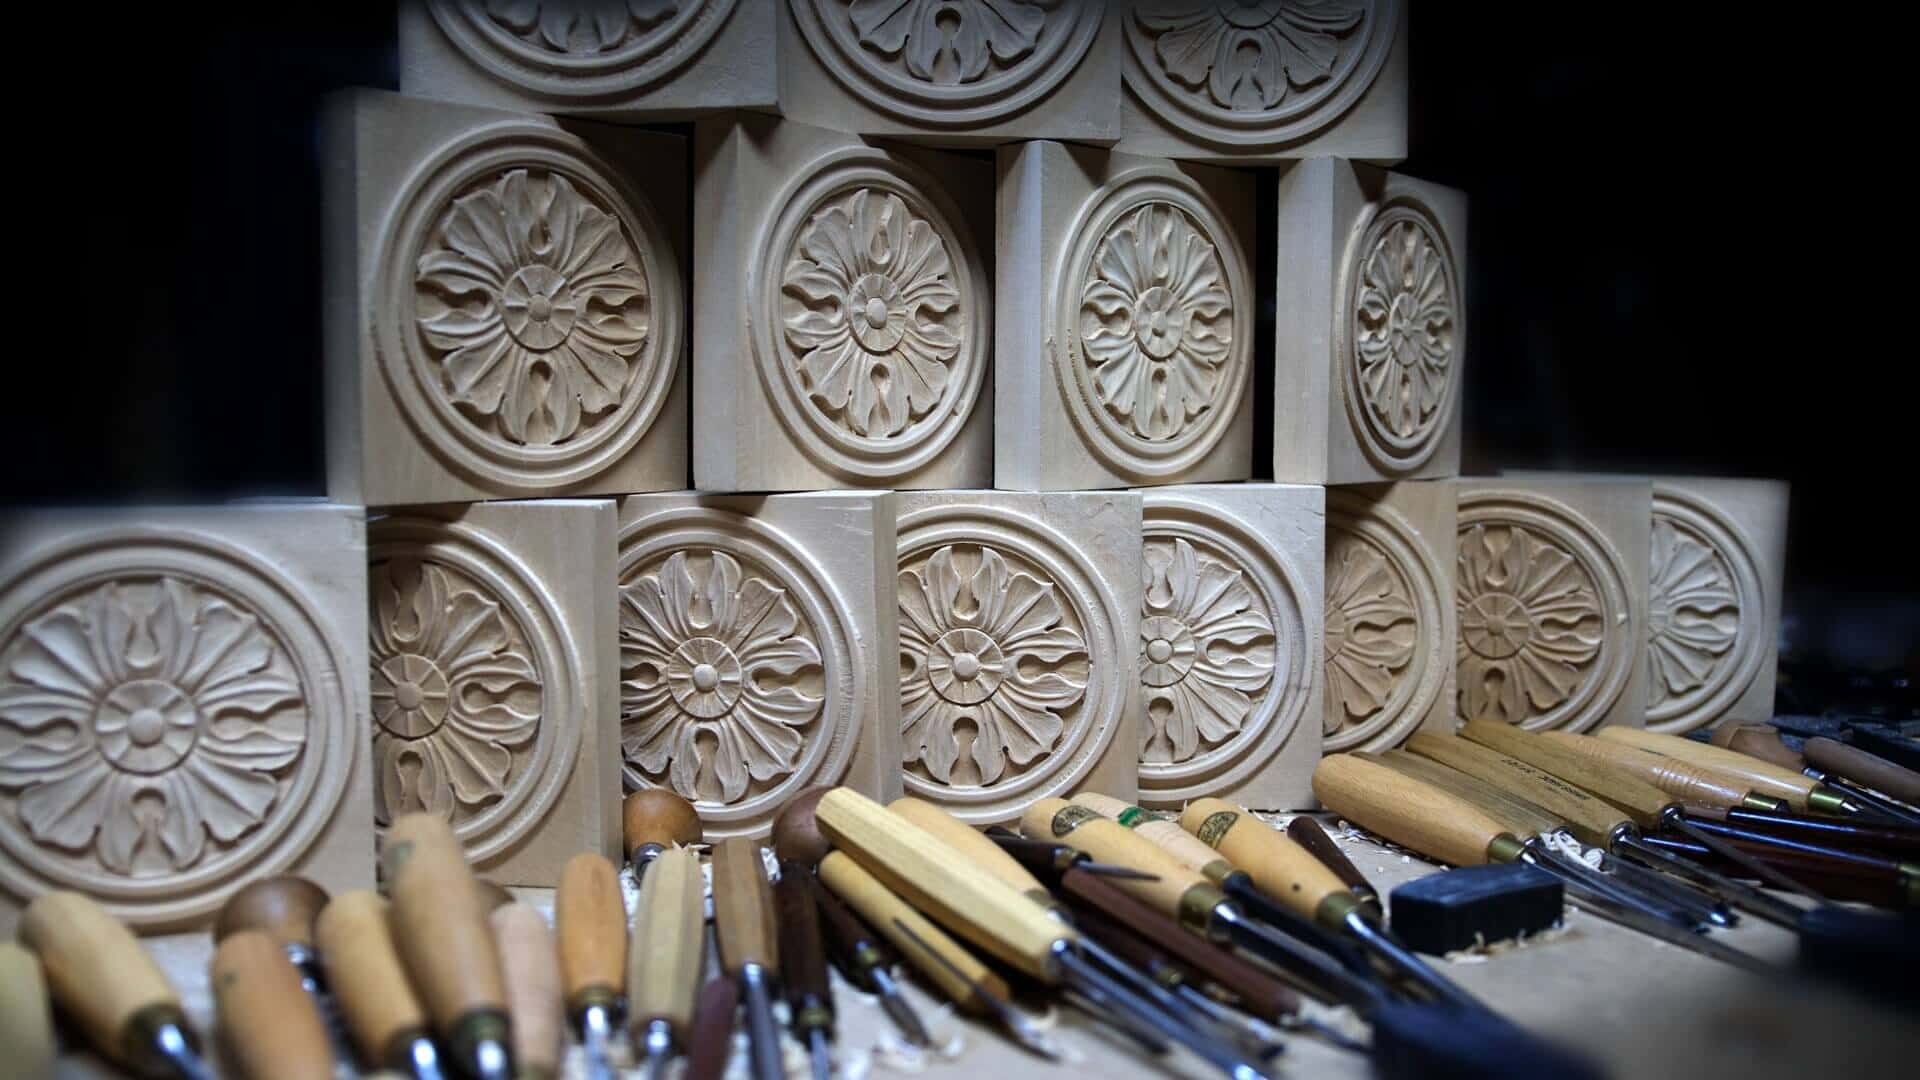 School of Woodcarving | Learn to carve Antique Style Rosette - Corner Block online woodcarving School https://schoolofwoodcarving.com #woodworking #woodcarving @grabovetskiy